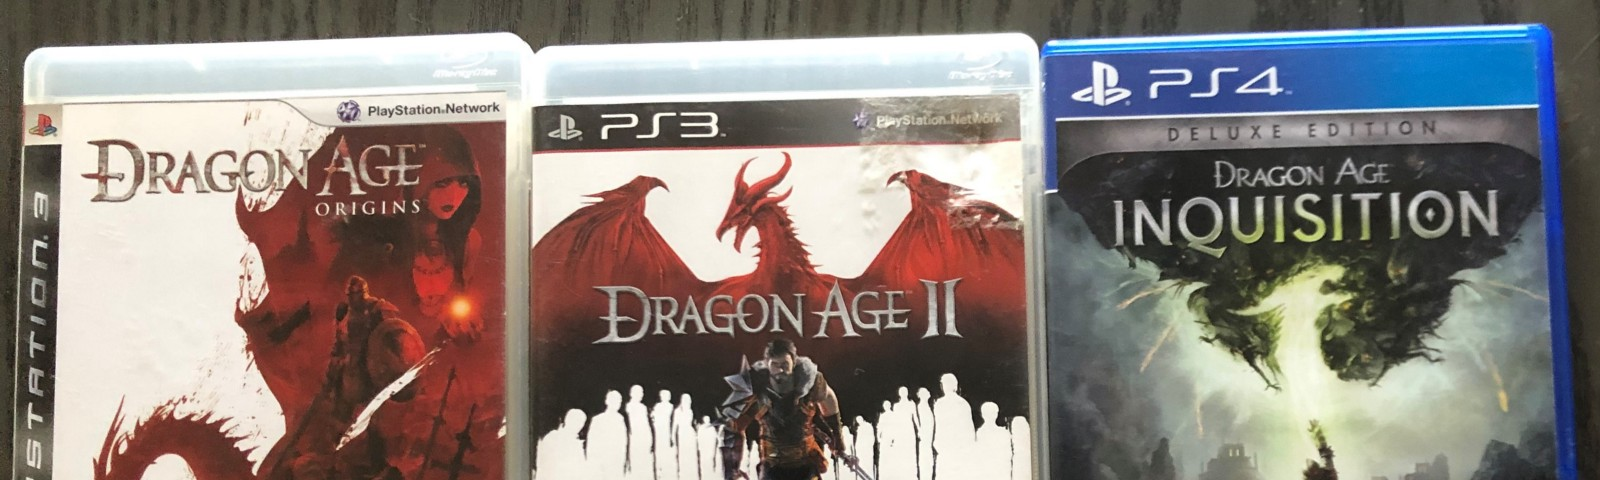 The game cases for Dragon Age: Origins, Dragon Age II, and Dragon Age: Inquisition